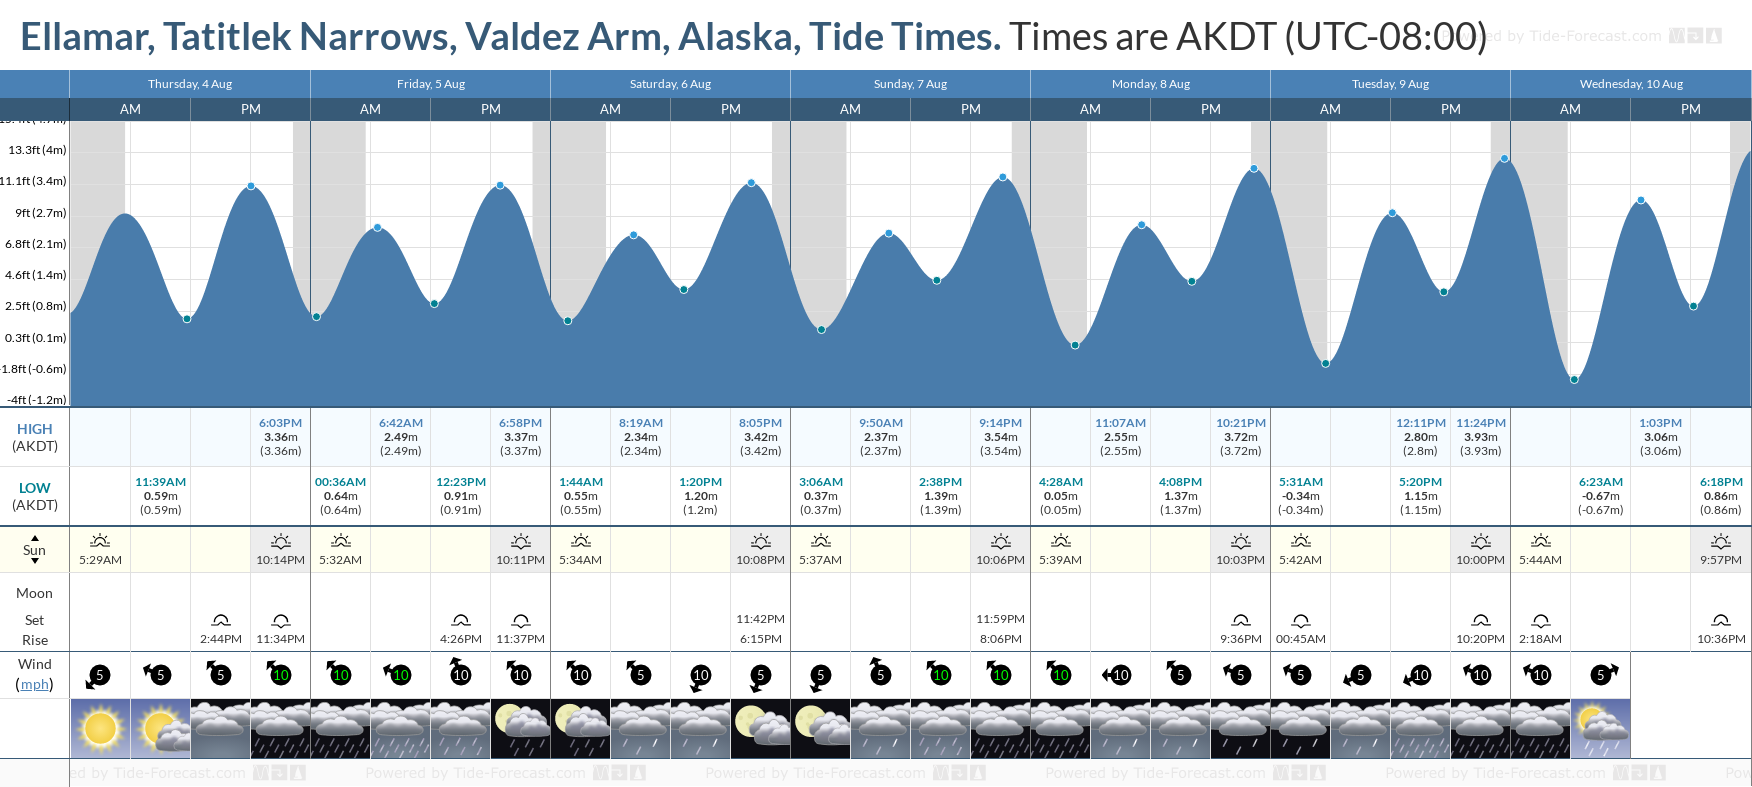 Ellamar, Tatitlek Narrows, Valdez Arm, Alaska Tide Chart including high and low tide tide times for the next 7 days